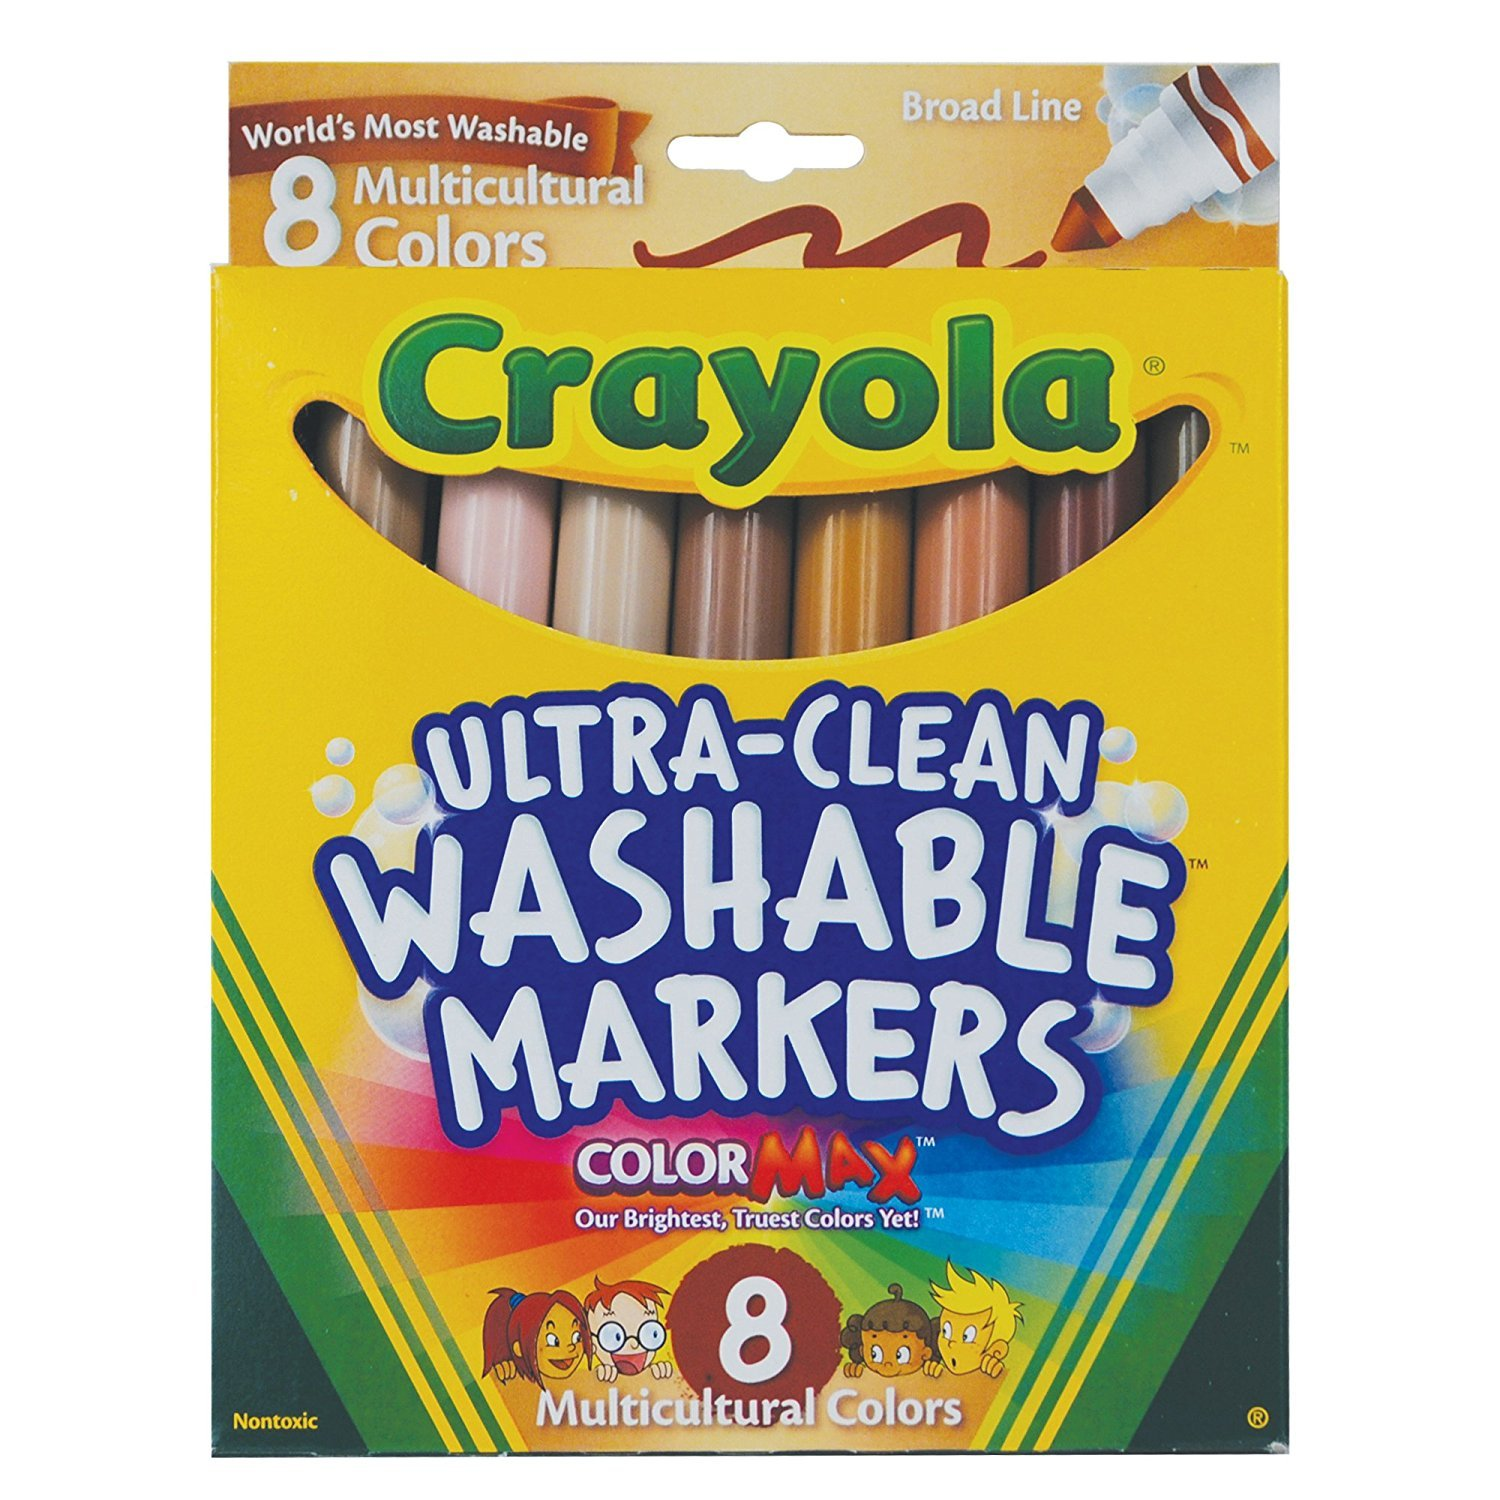 Crayola Multicultural Colors Broad Line Washable Markers, Art Tools 8 ct. Case of 24